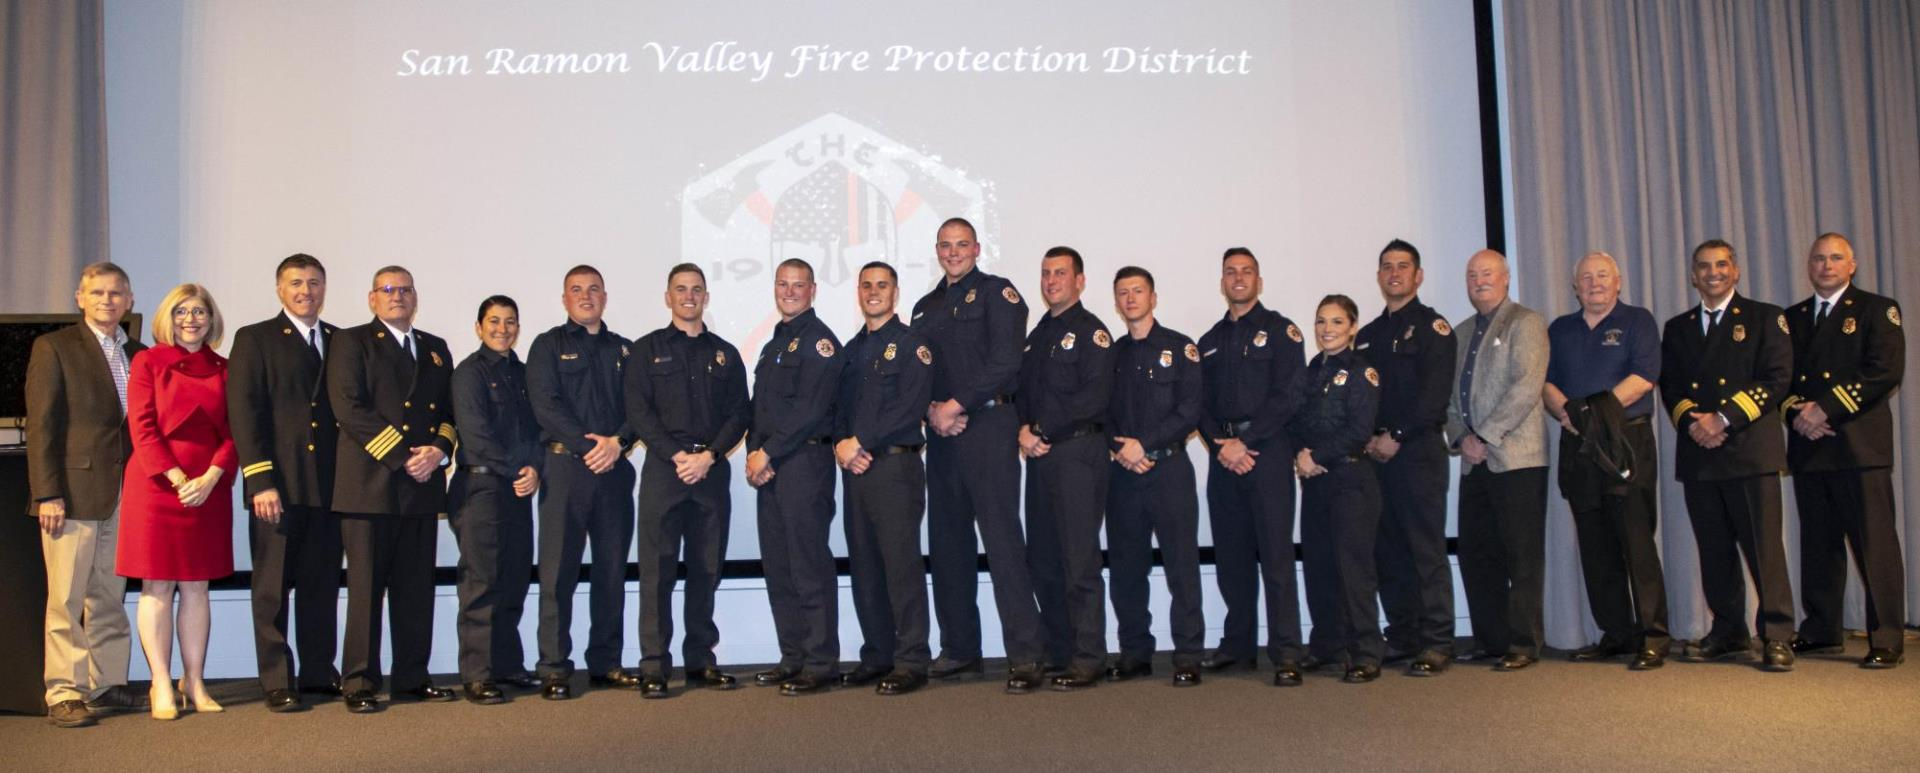 Fire Board of Directors, Command Staff, and Academy Class 2019-1